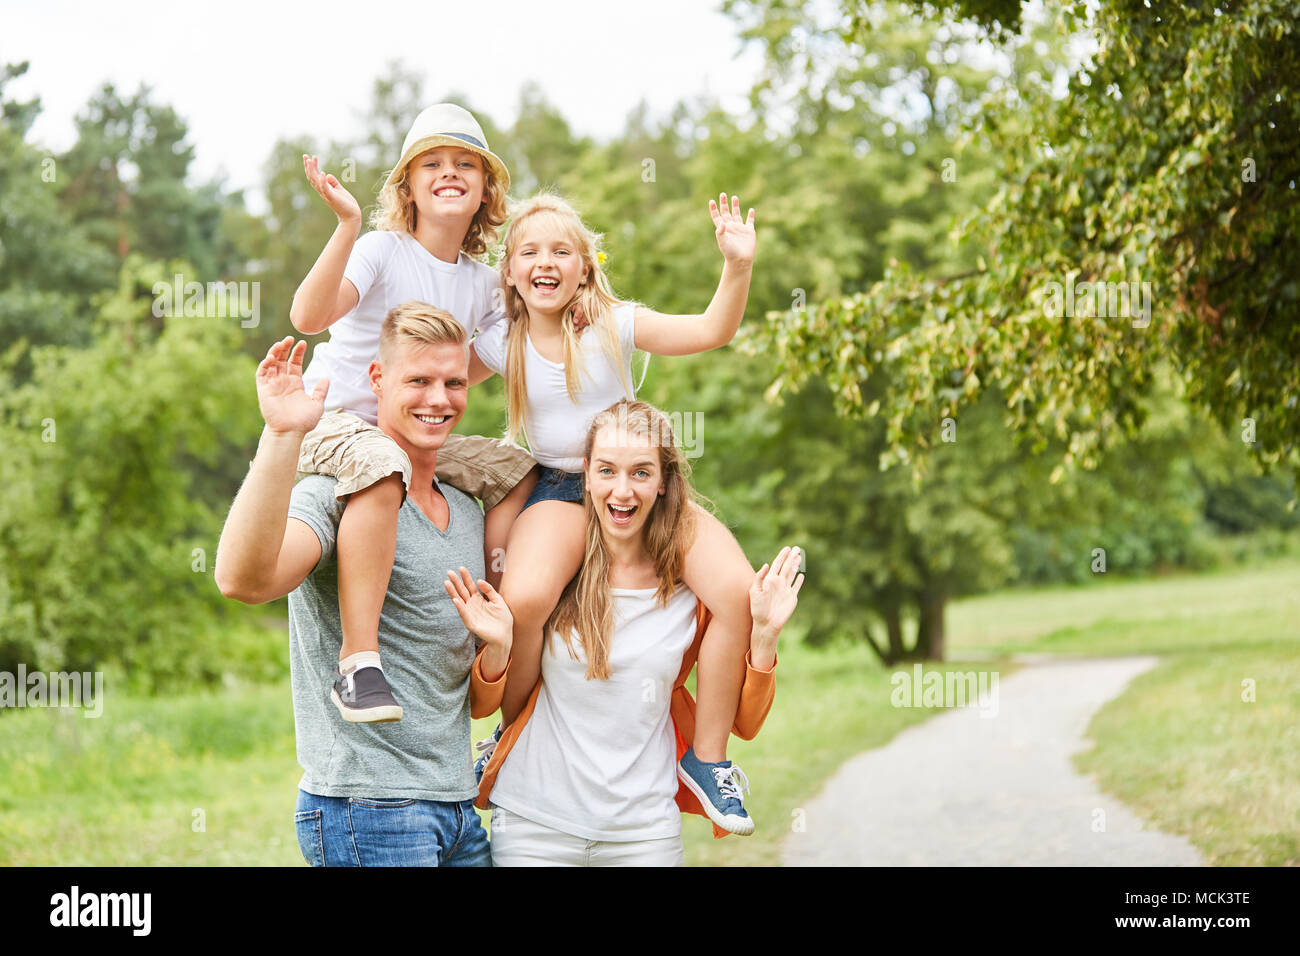 Family and children in piggyback cheerfully waving on a trip - Stock Image